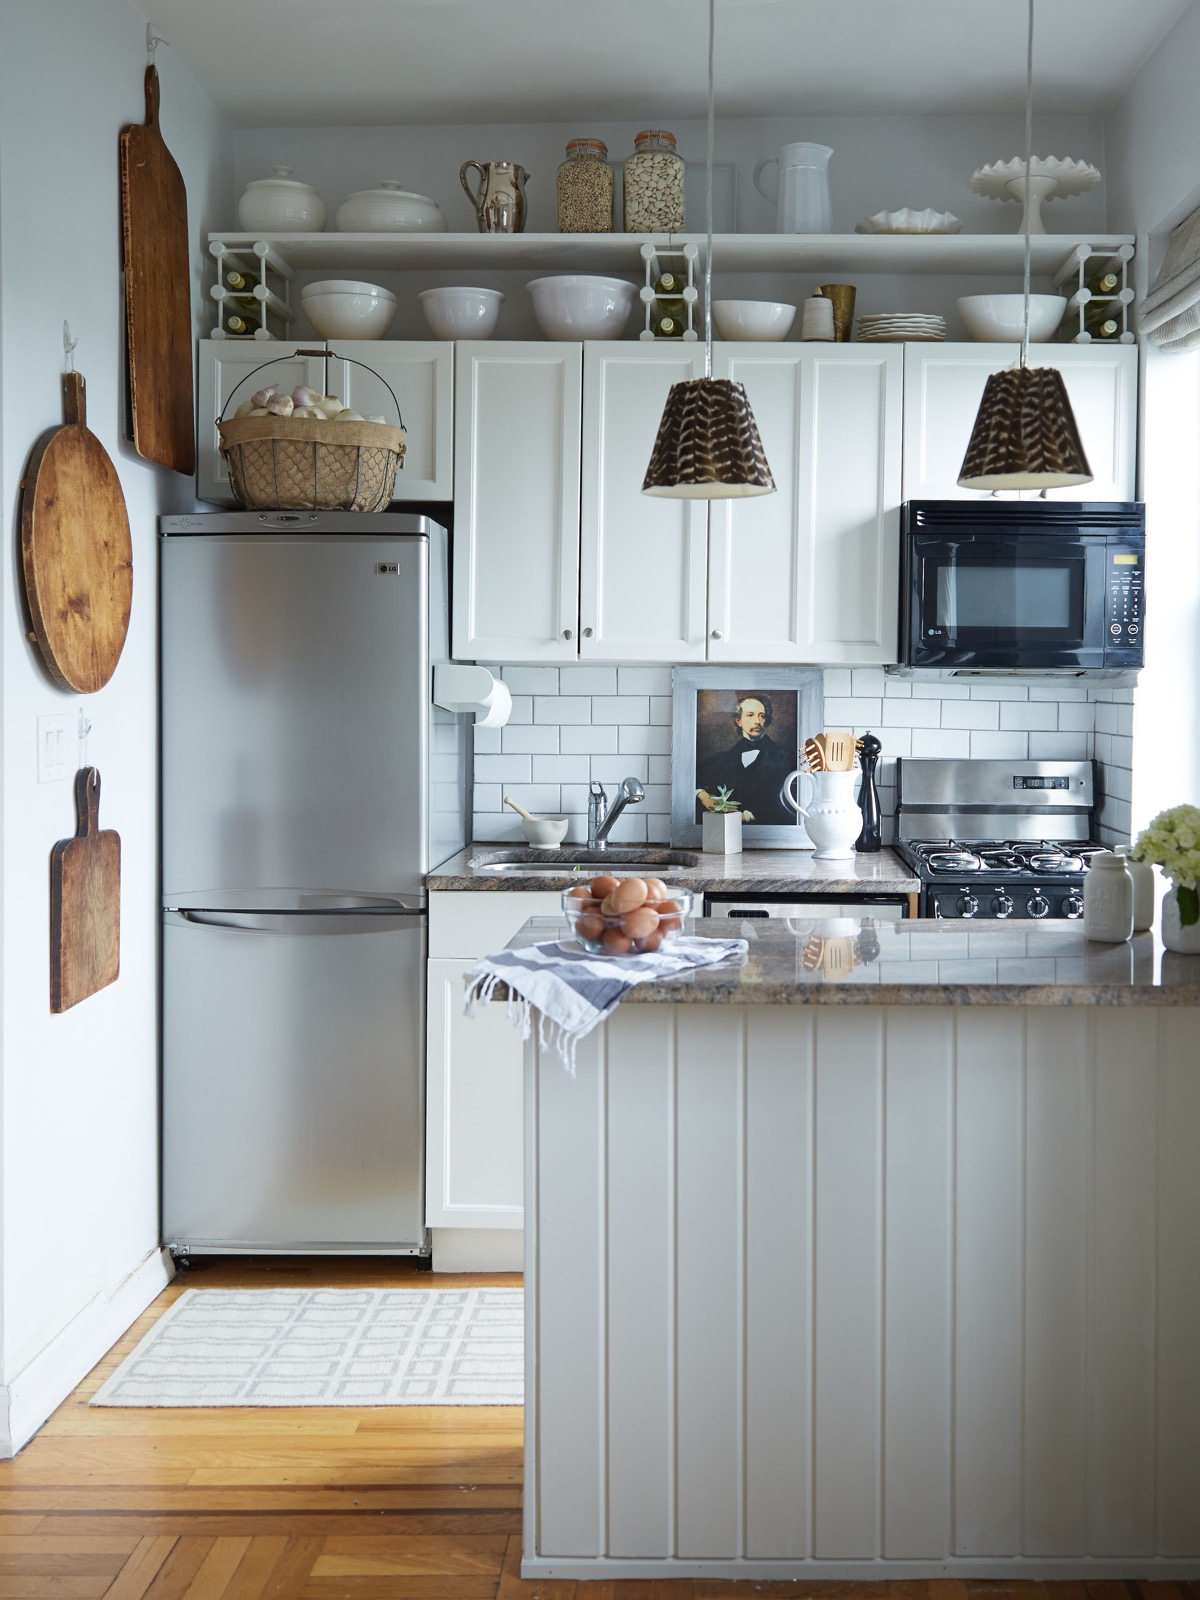 Small Apartment Kitchen 50 Splendid Small Kitchens And Ideas You Can Use From Them